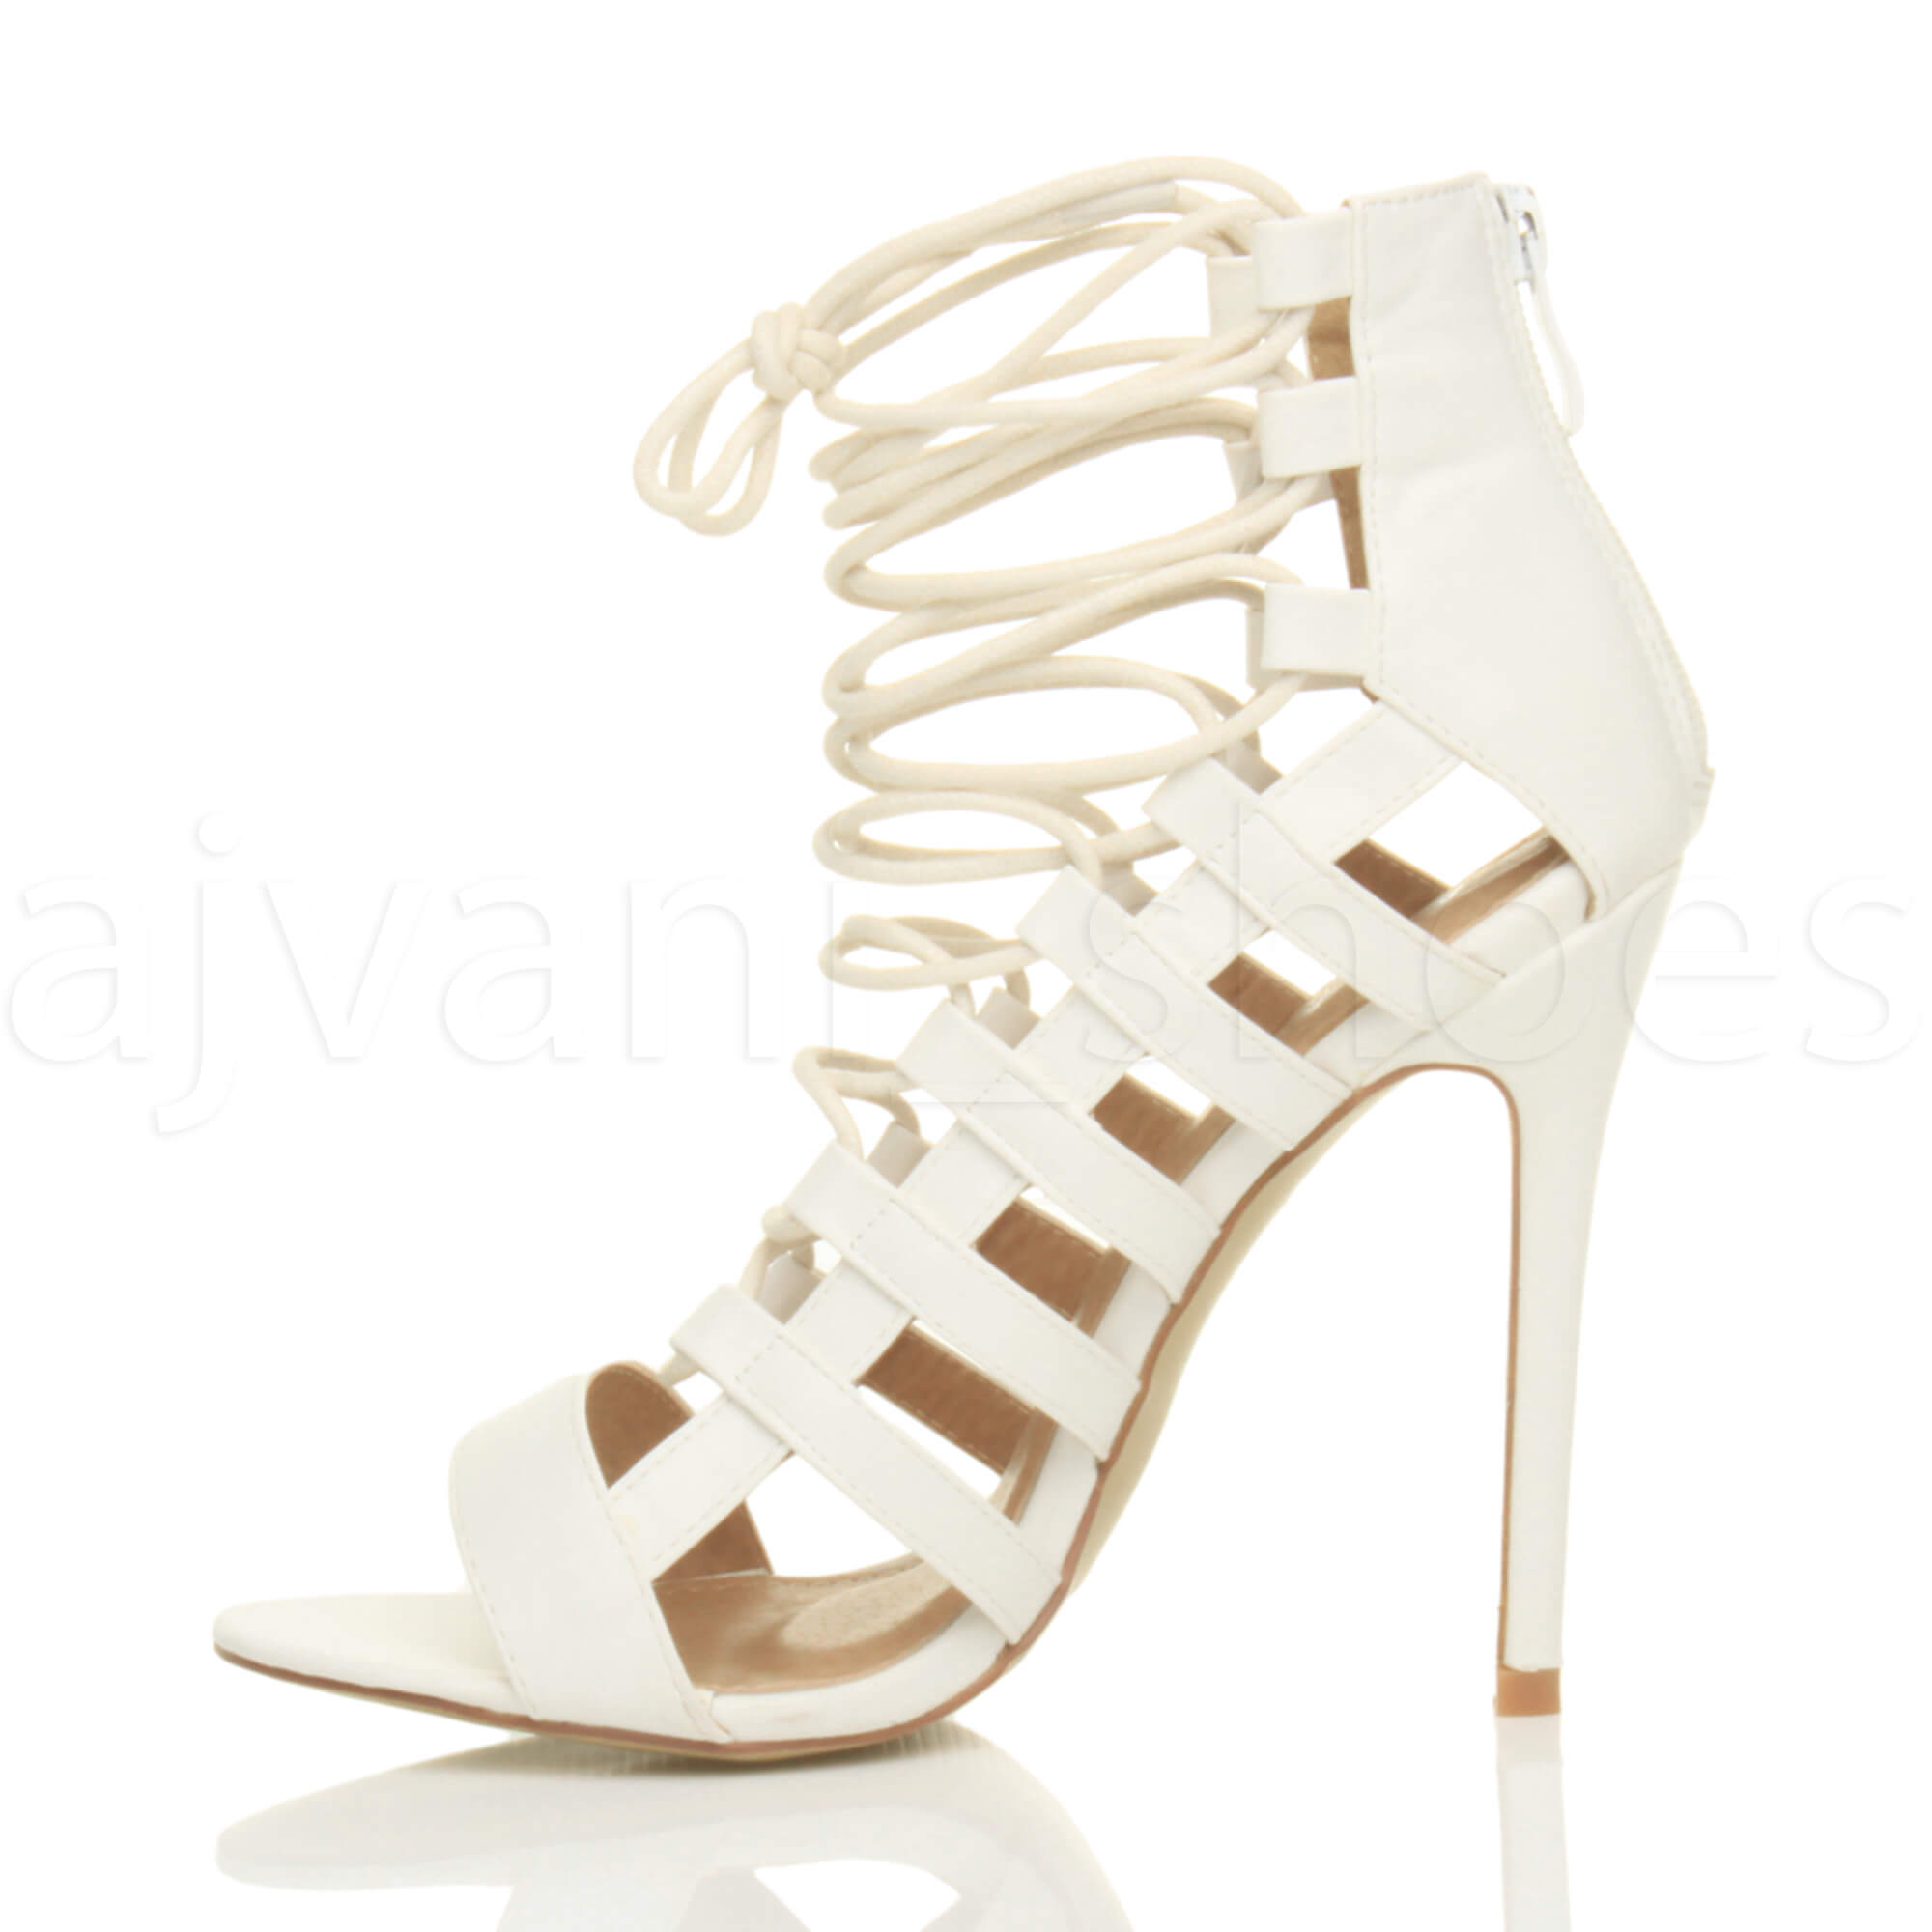 WOMENS-LADIES-HIGH-HEEL-STRAPPY-LACE-UP-ZIP-CUT-OUT-GHILLIE-SANDALS-SHOES-SIZE